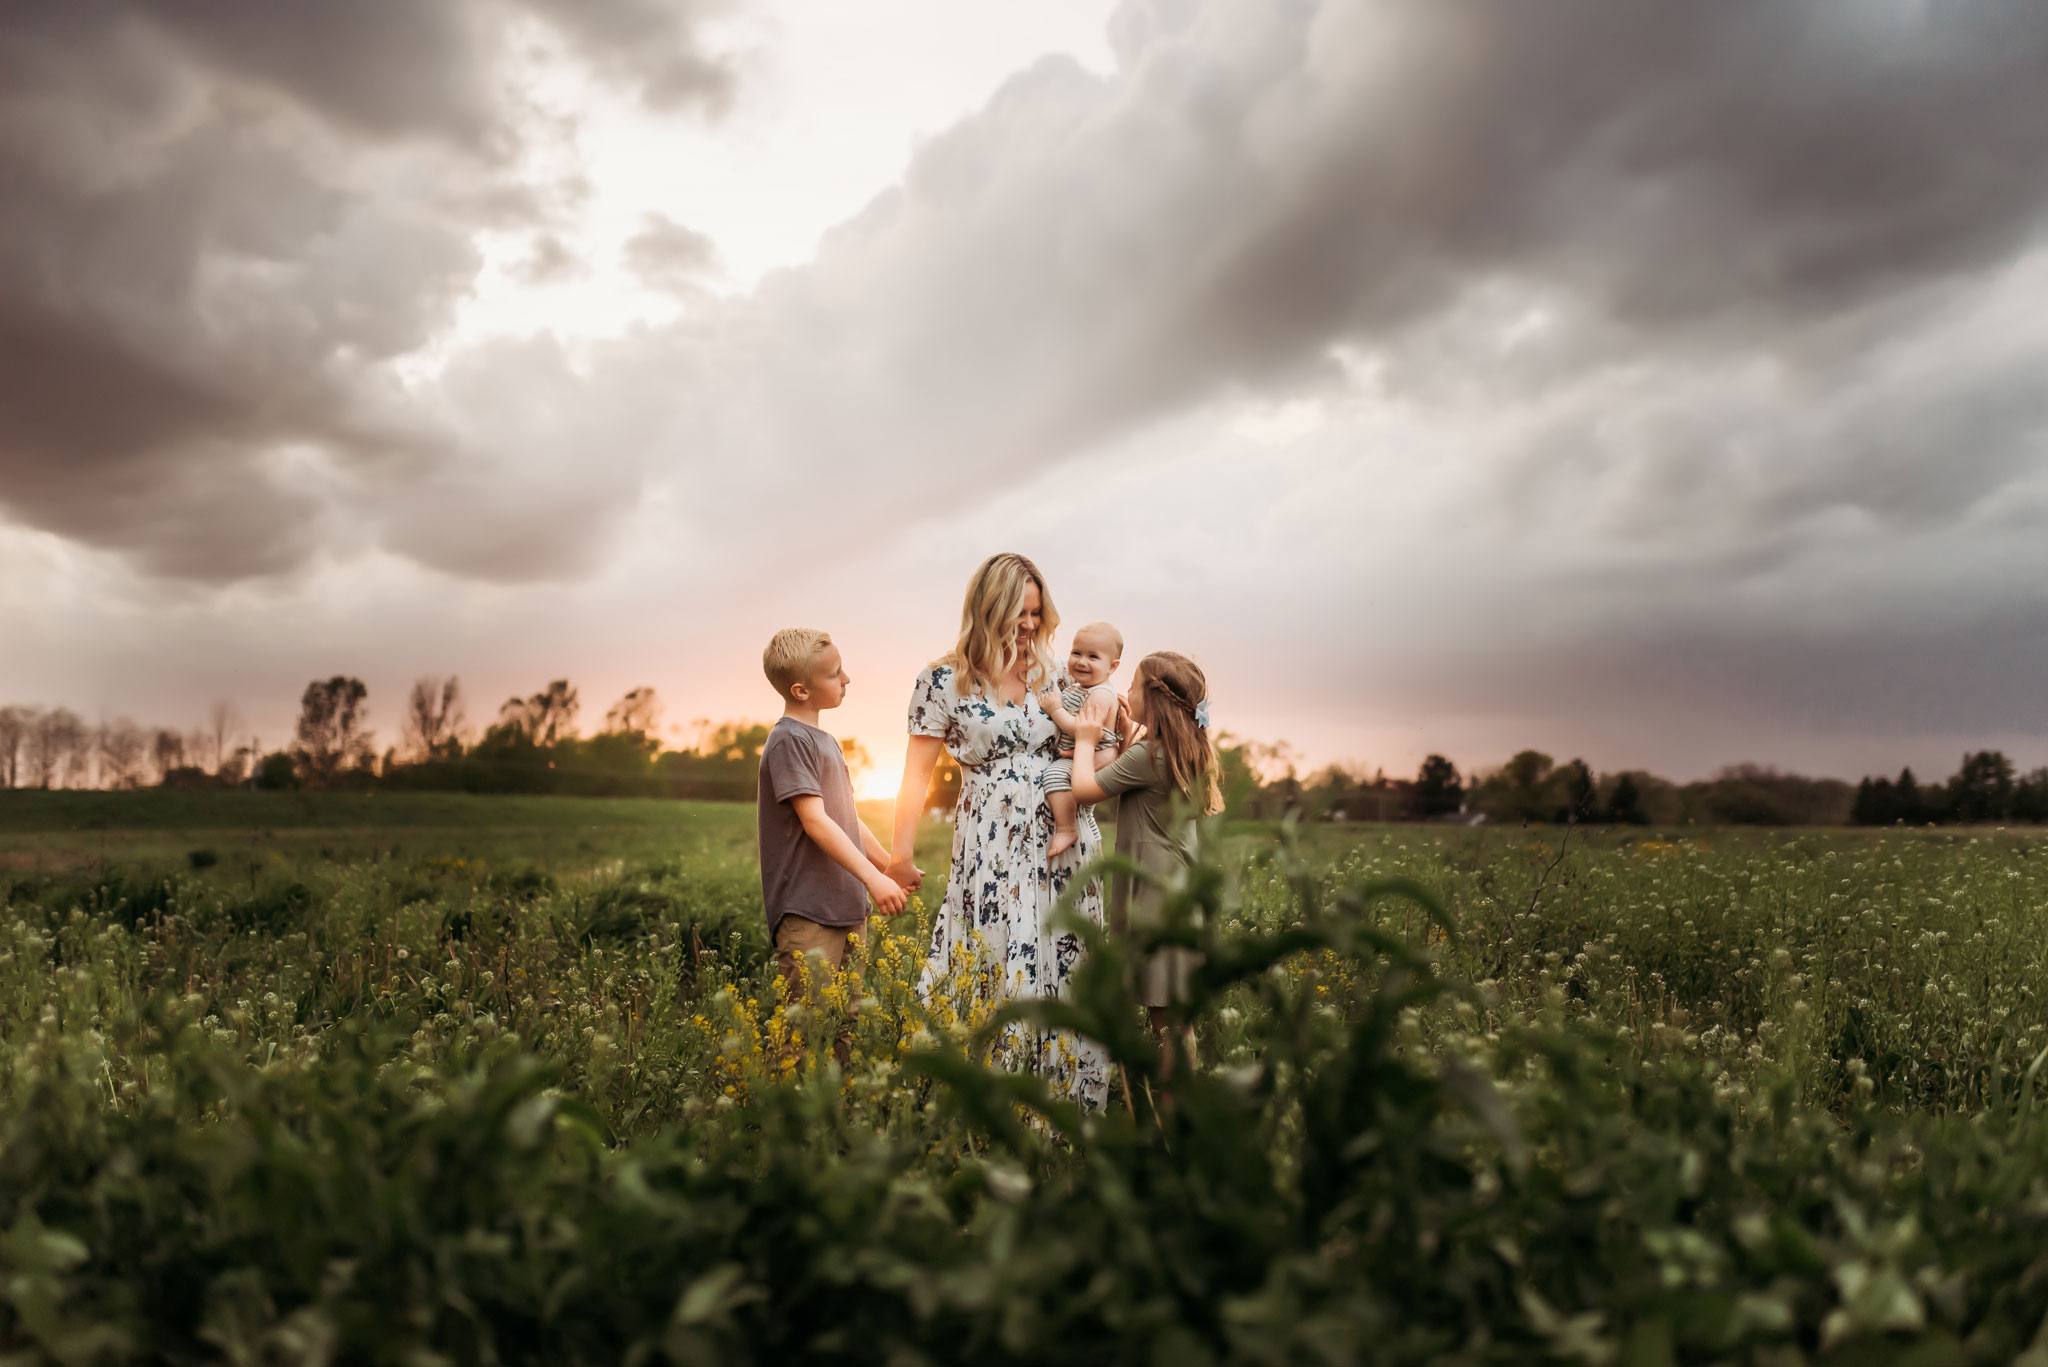 Your Tribe - An effortless mix between lifestyle and posed family sessions in Kenosha County and surrounding areas.